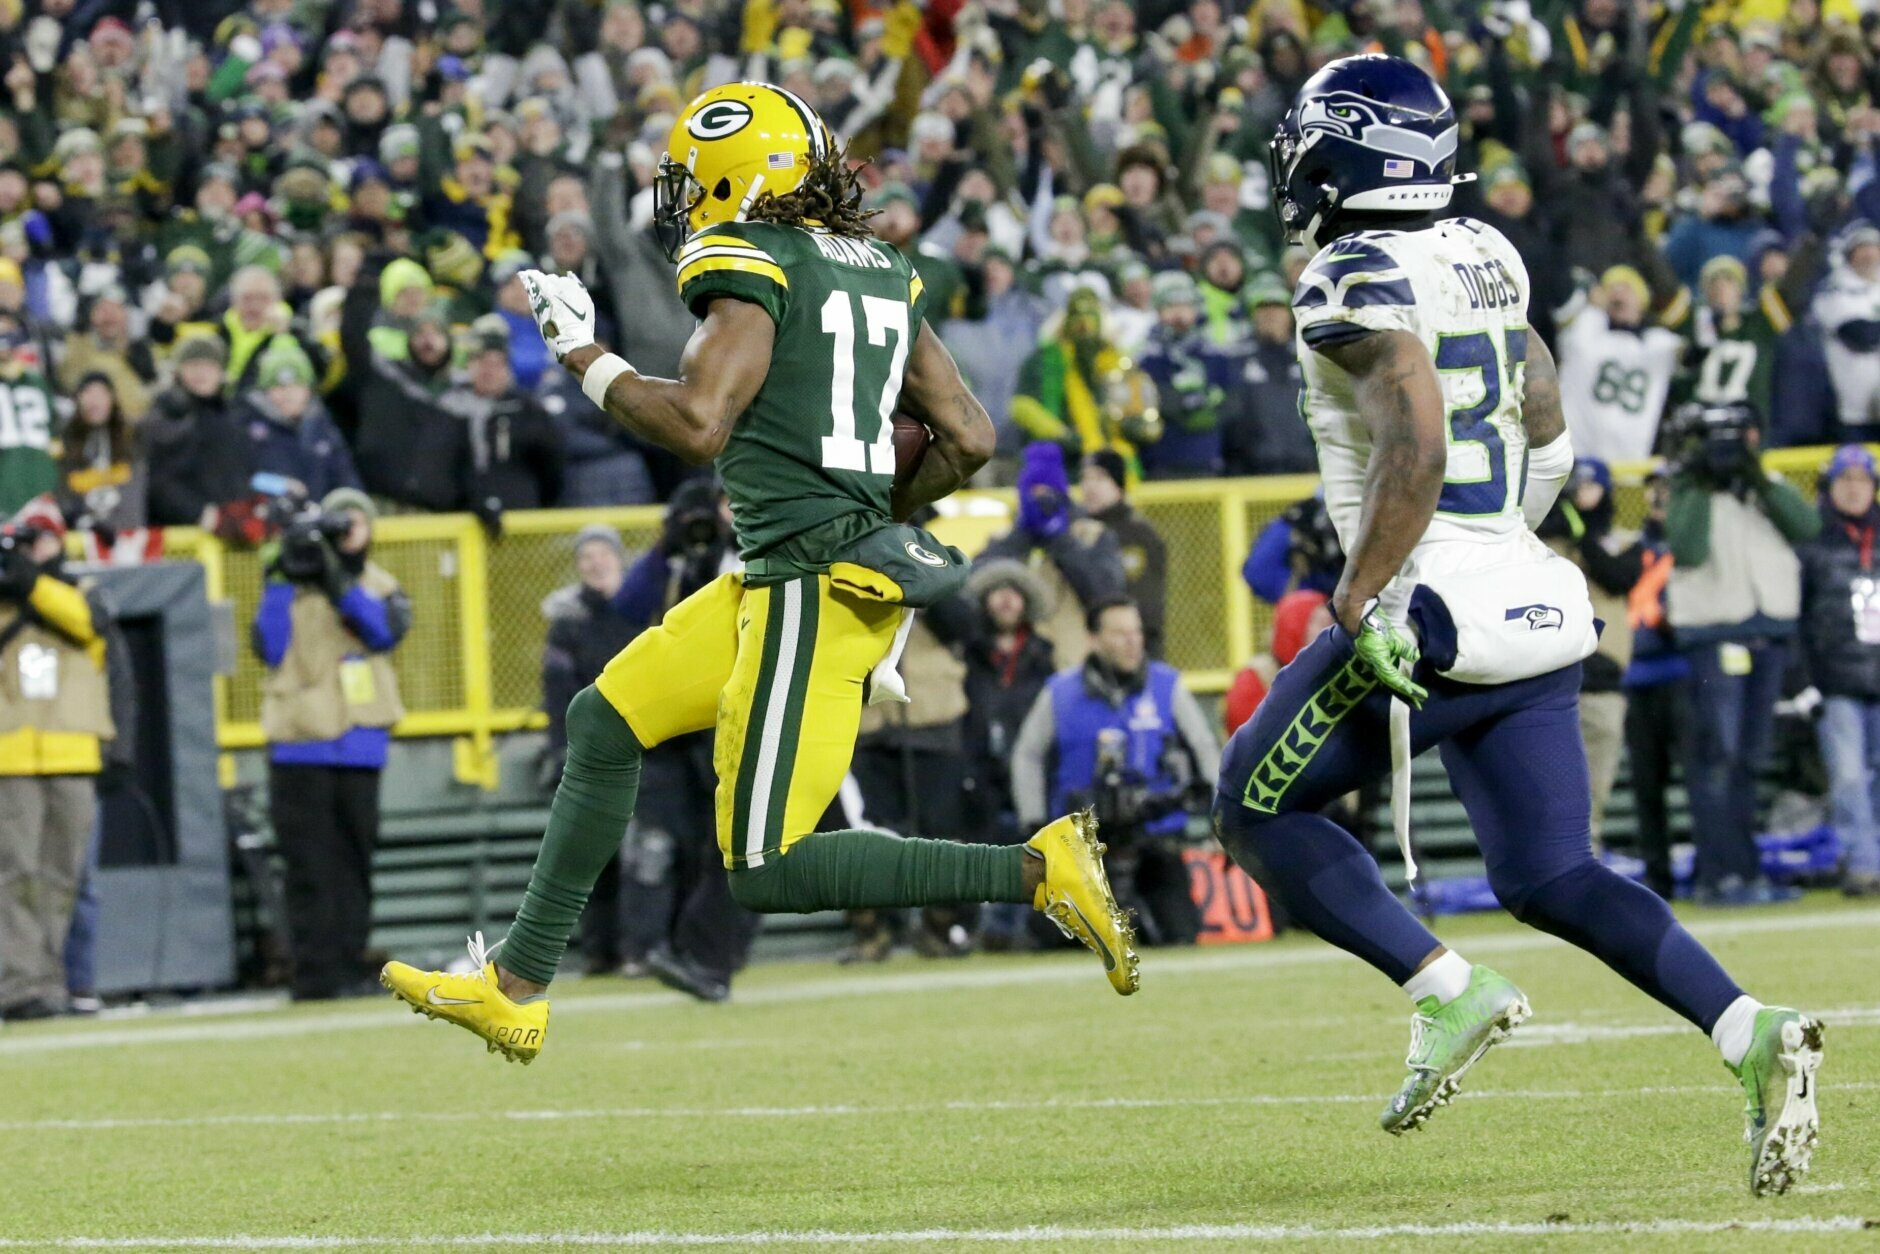 """<p><b><i>Seahawks 23</i></b><br /> <b><i>Packers 28</i></b></p> <p>Aaron Rodgers may be the face of the Green Bay Packers, but Devante Adams looks like the key to their title hopes after scoring both of Rodgers&#8217; touchdowns and setting a postseason franchise-record with 160 receiving yards. If he can generate even half that against the top-ranked 49ers pass defense next week, the NFC title game will be a good one.</p> <p>Meanwhile, Russell Wilson&#8217;s languishing at Lambeau continued, dropping to 0-4 on football&#8217;s holy ground despite staging a late rally to pull Seattle within striking distance of yet another of <a href=""""https://twitter.com/ESPNStatsInfo/status/1216549821911310336?s=20"""" target=""""_blank"""" rel=""""noopener"""">their patented one-score victories</a>. If the Seahawks are going to keep pace in the increasingly-competitive NFC West, they&#8217;ll need to prioritize getting him some more help this offseason.</p>"""